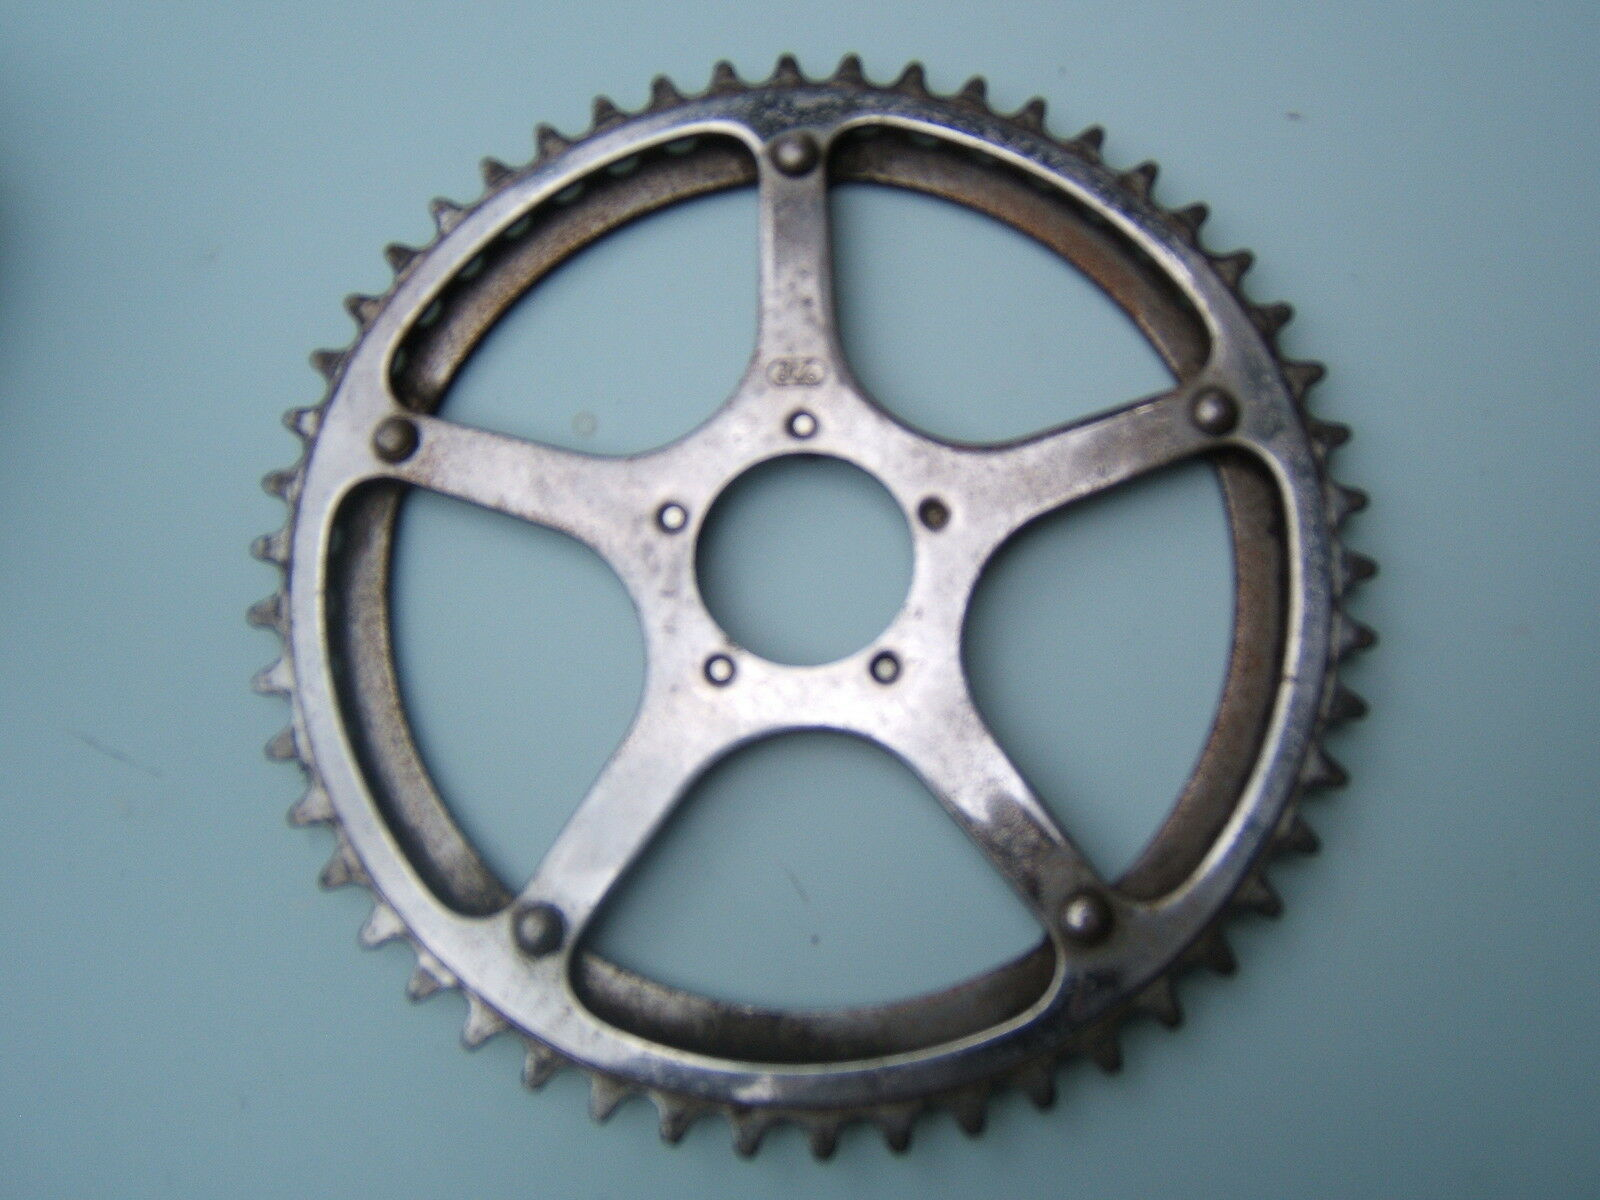 Cyclo chainring  1960's steel made in france  wholesale store